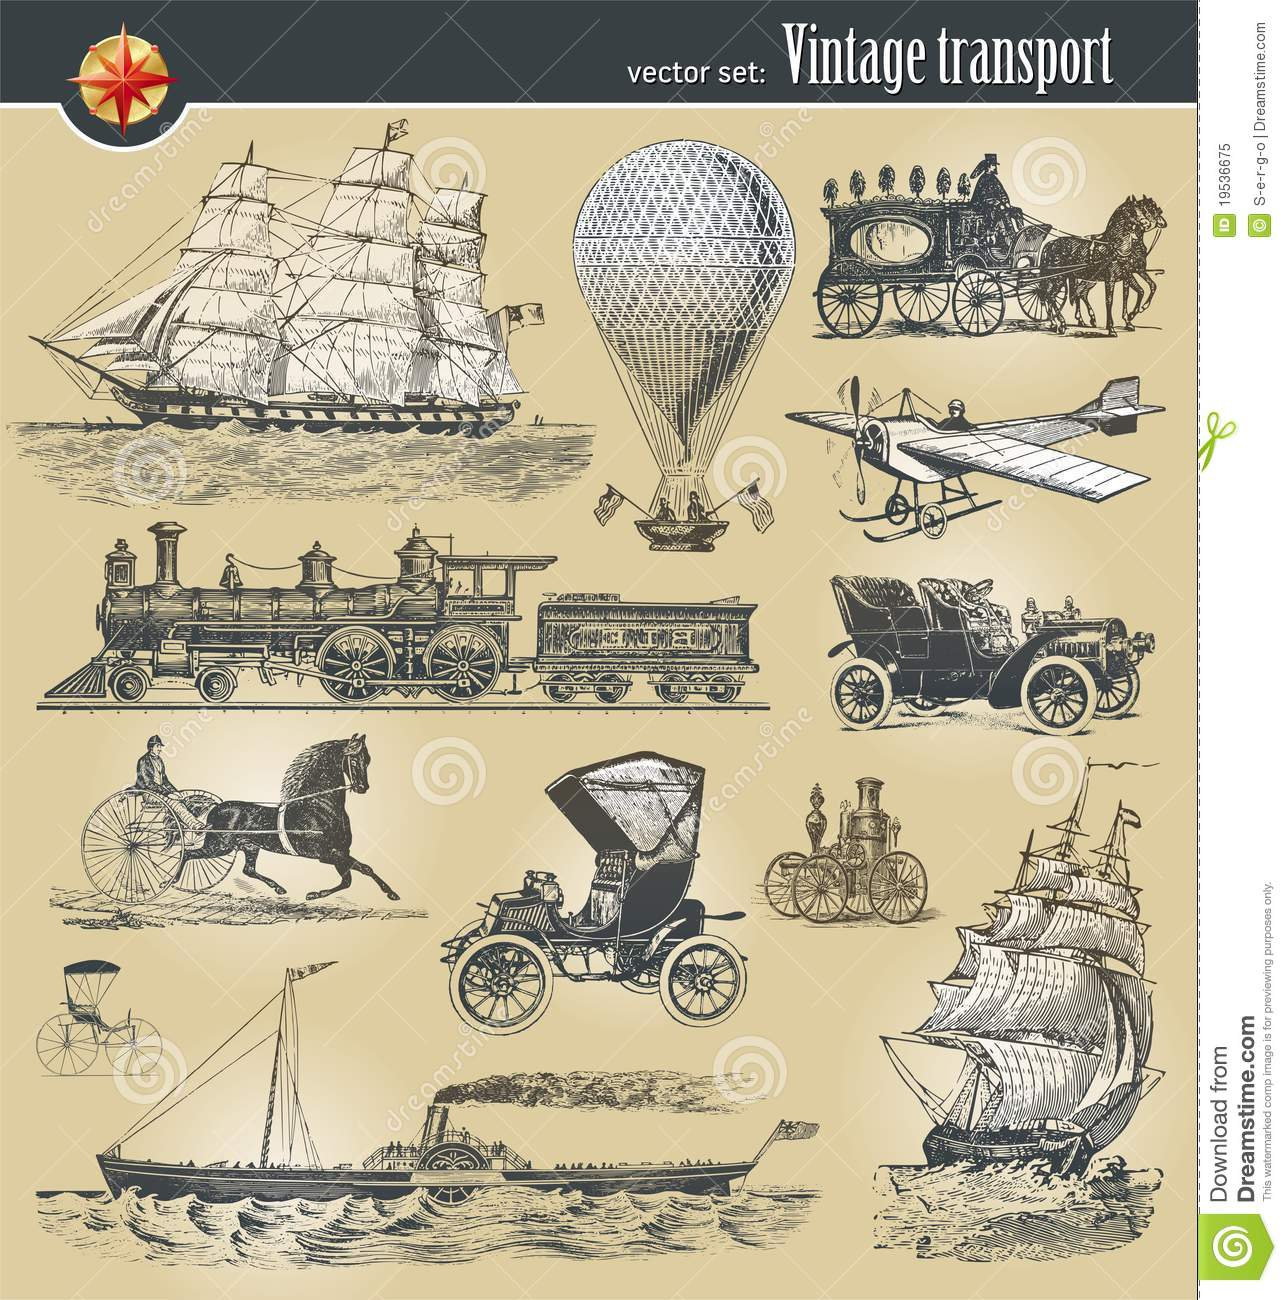 Vintage Historical Transport Royalty Free Stock Photo